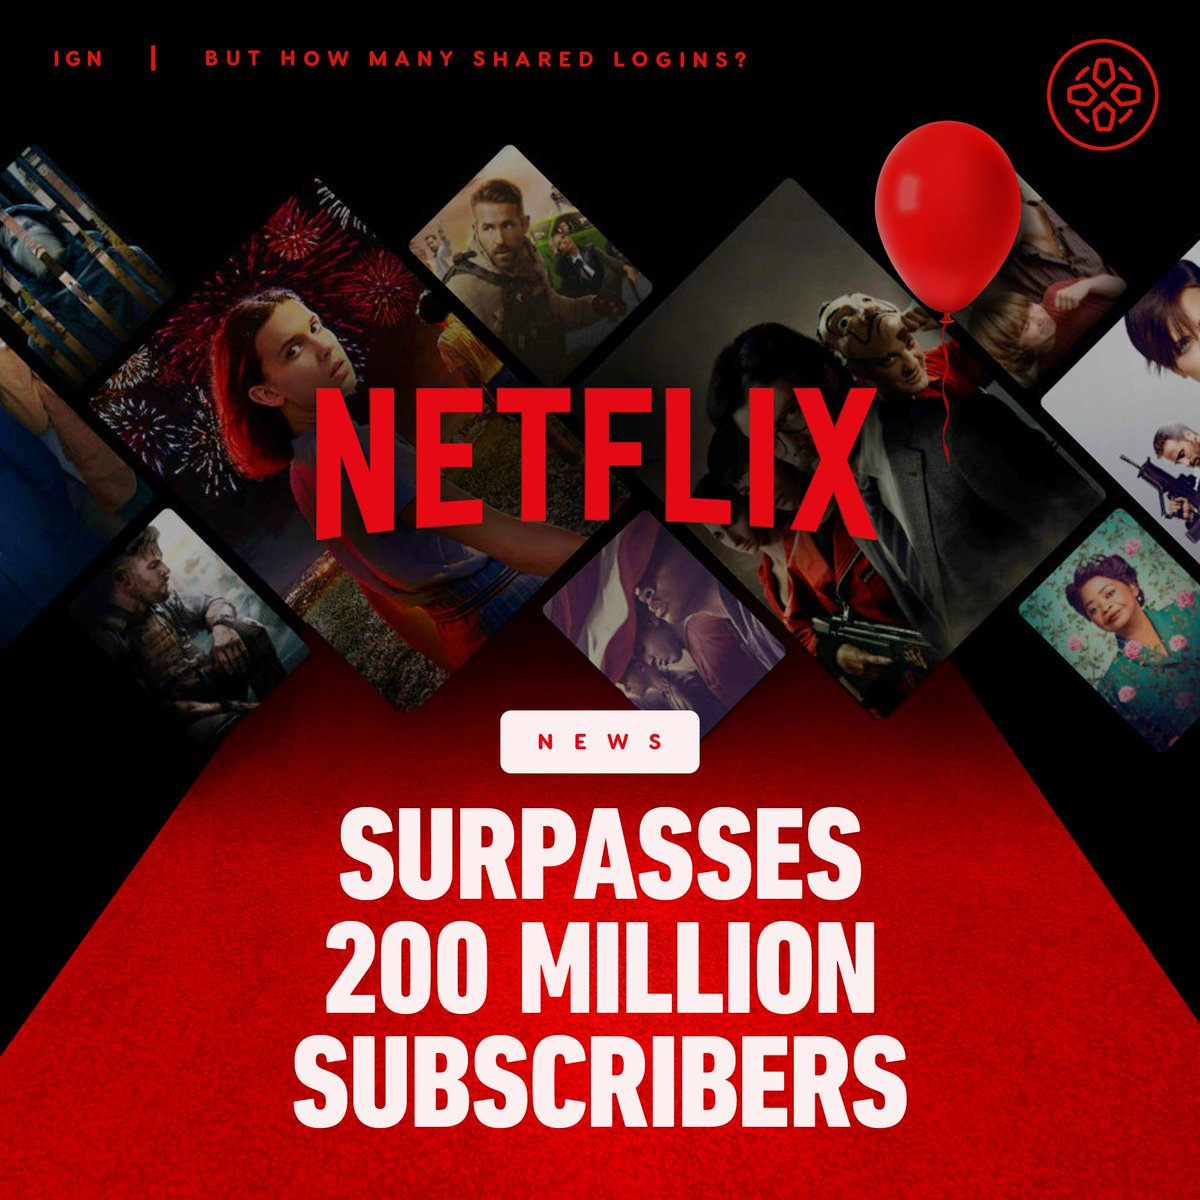 Basically, one in every 39 people on Earth pay for a Netflix subscription. 🤯